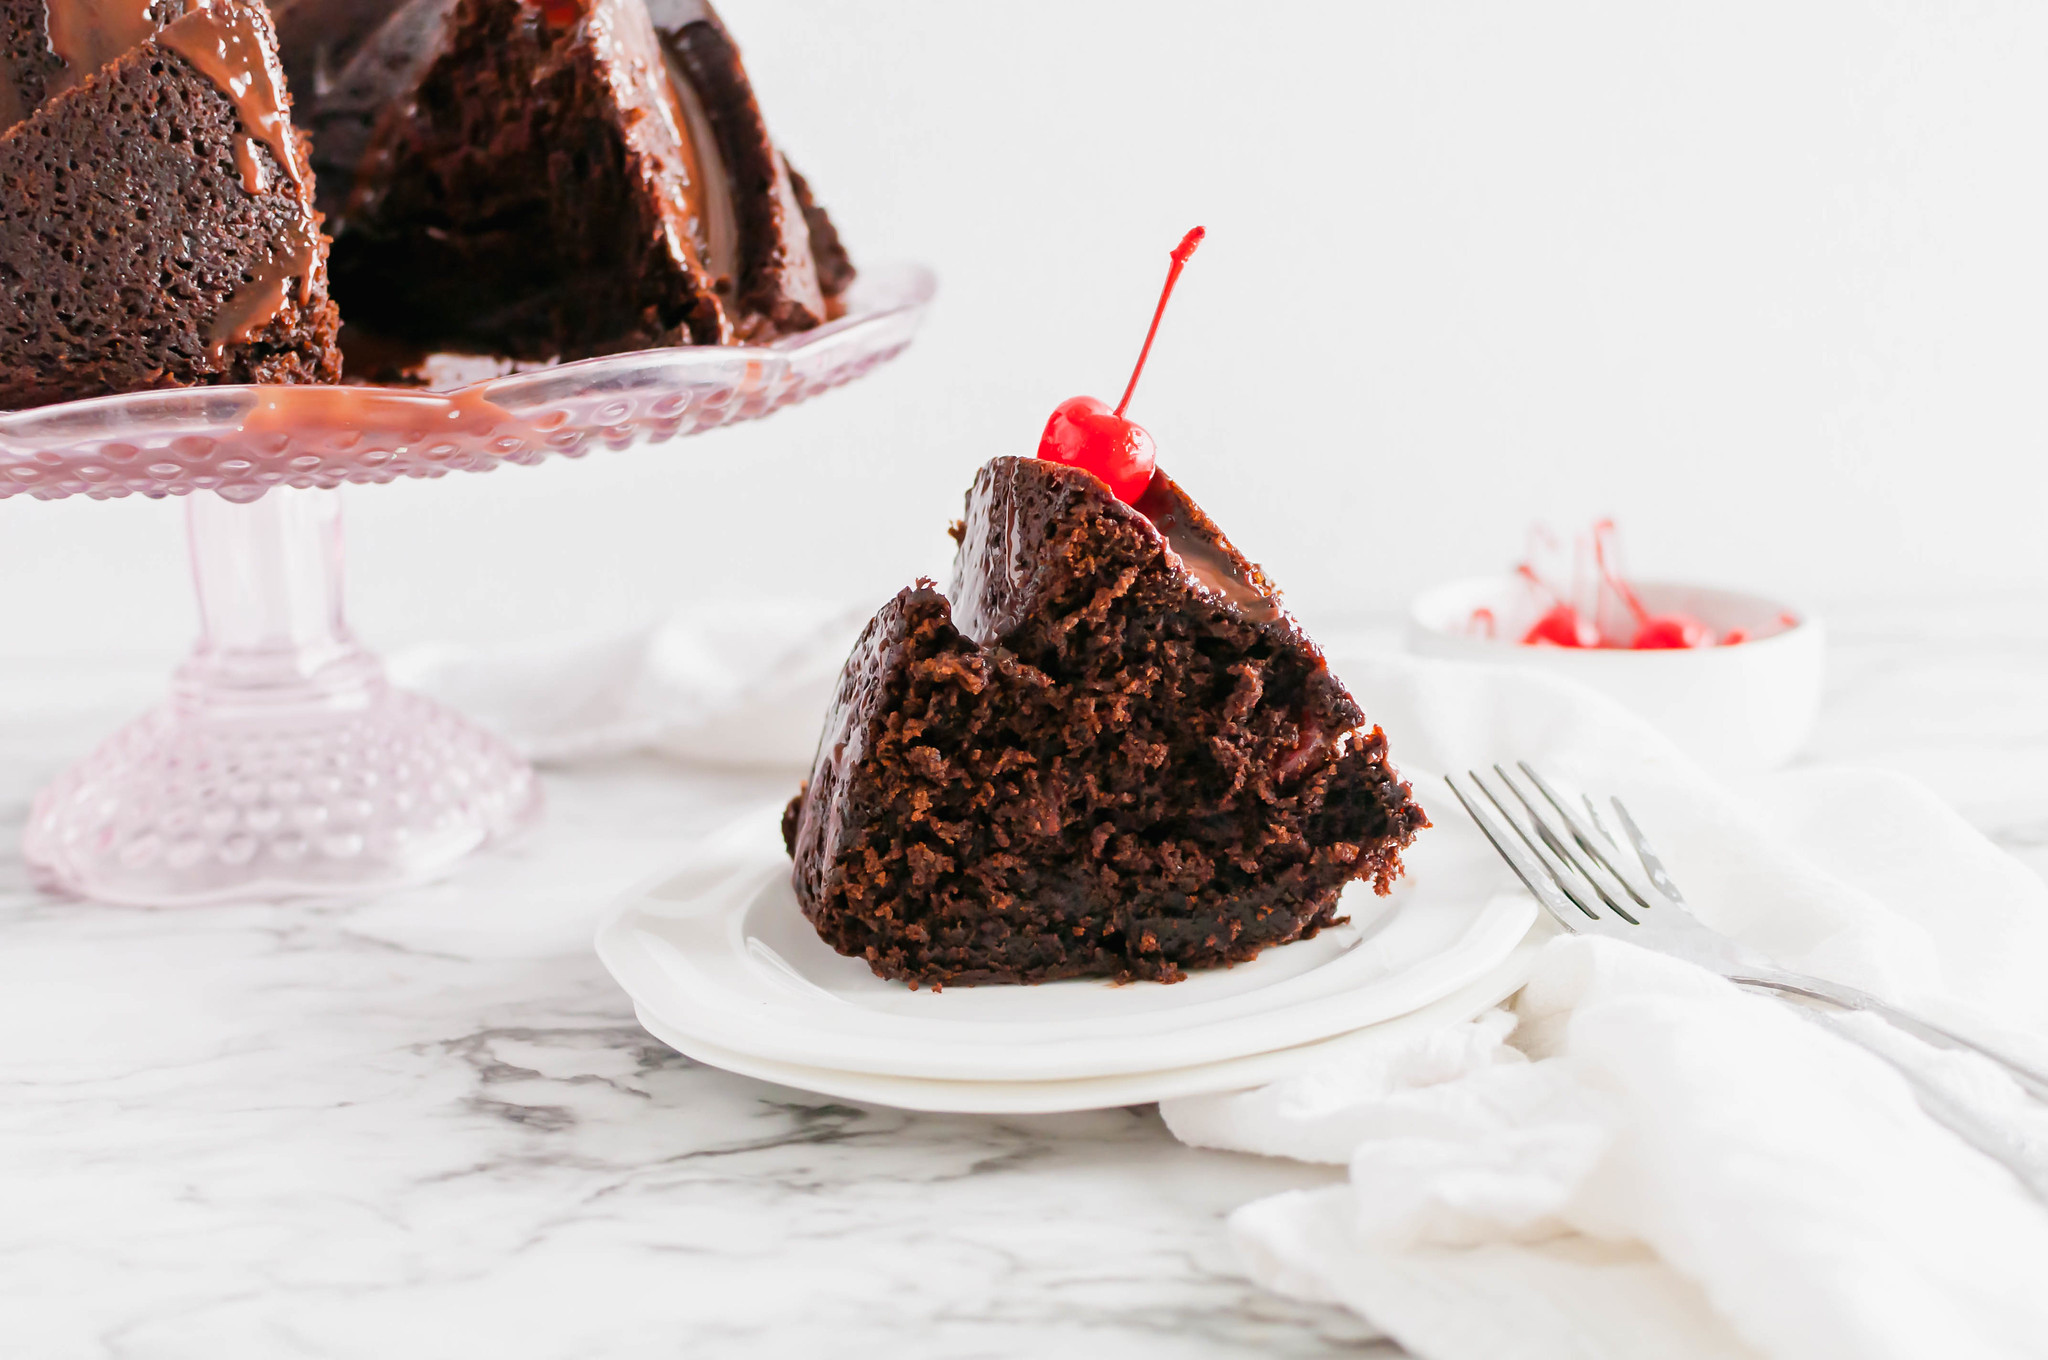 Celebrate National Chocolate Cake Day with this Chocolate Cherry Cake. It's incredibly rich and packed with fruity maraschino cherries.